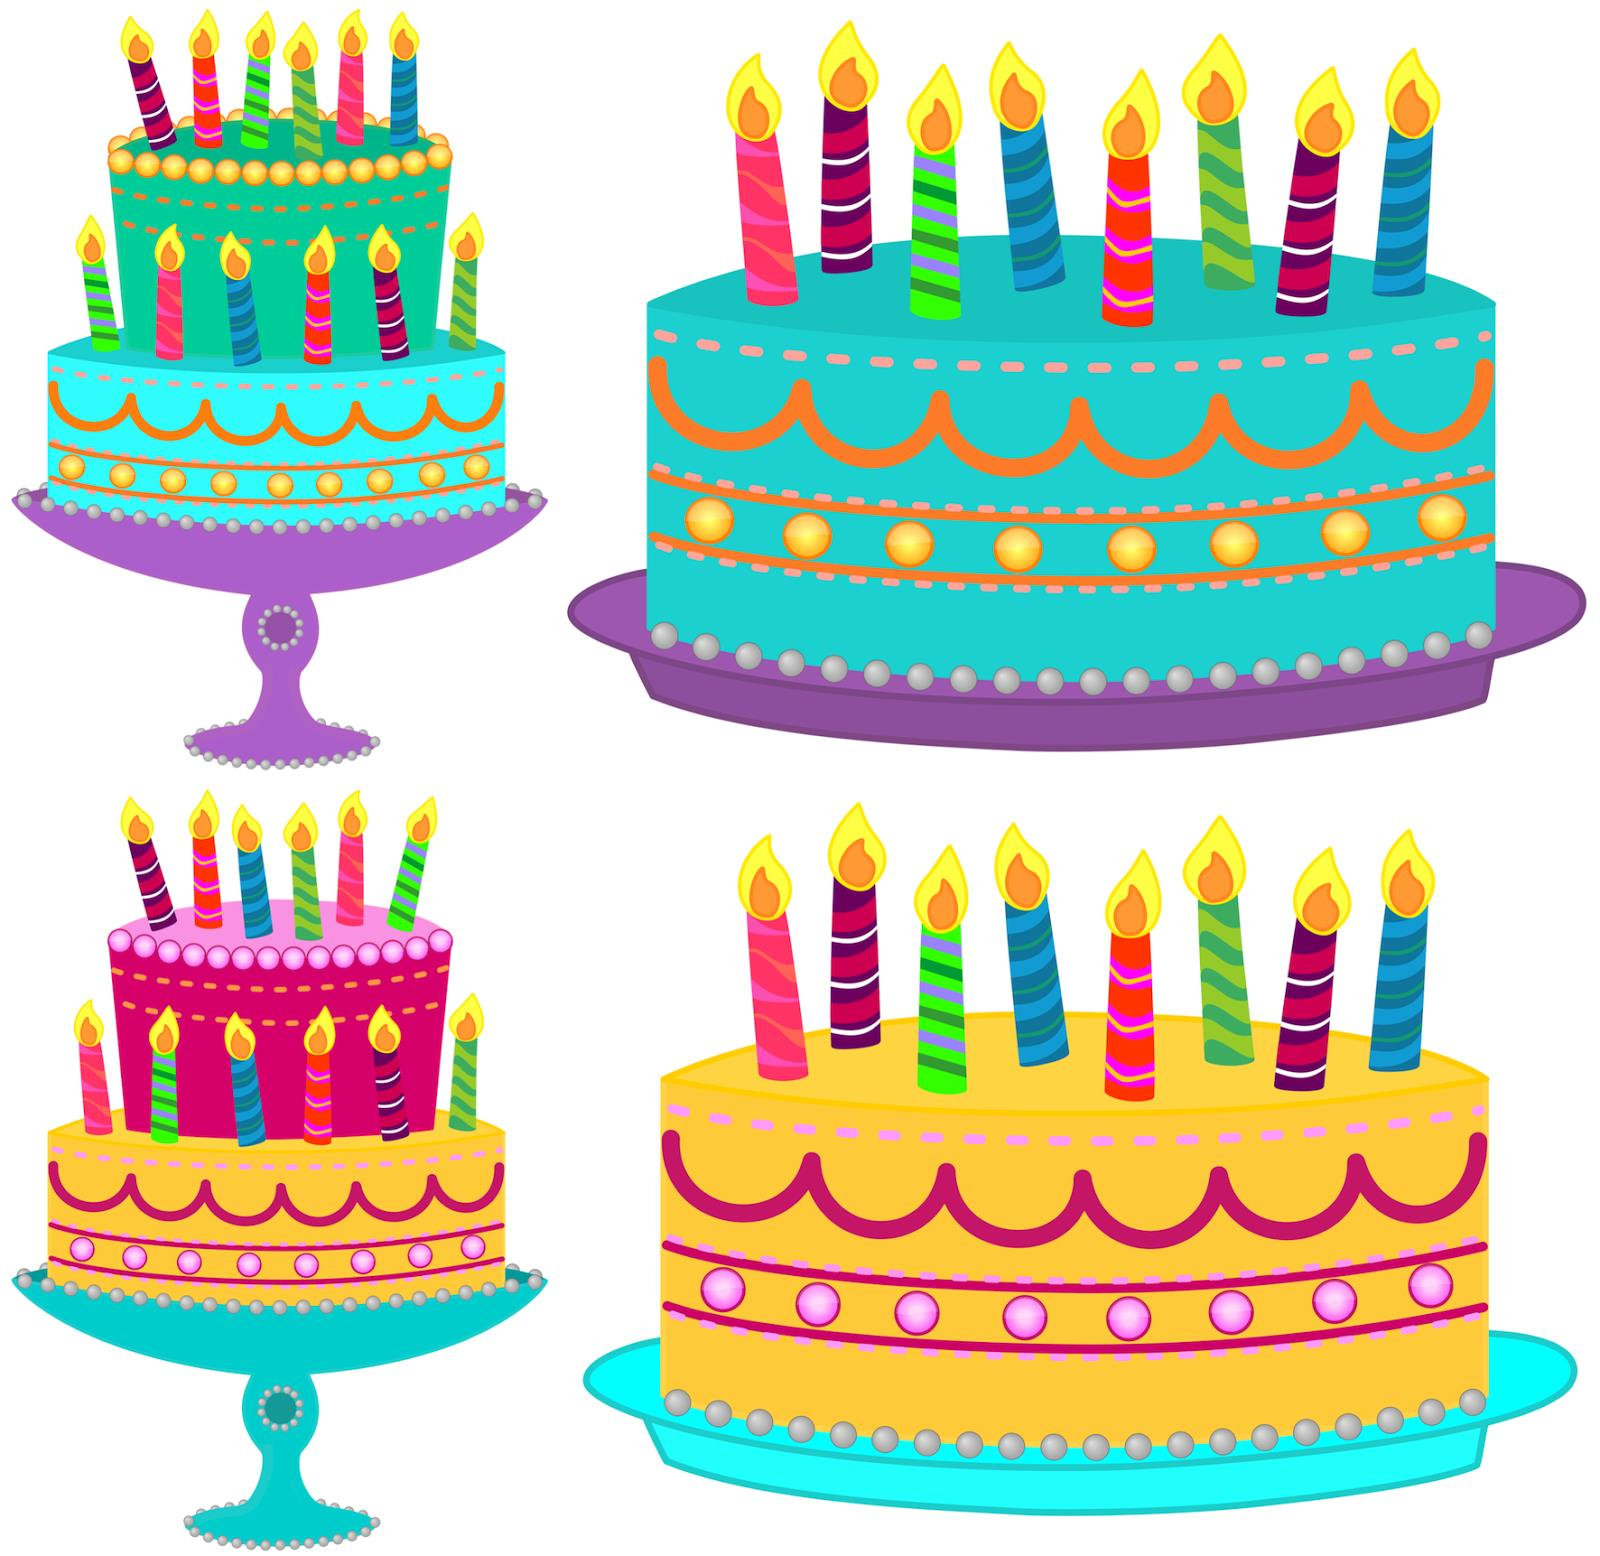 birthday cake with candles clipart ; ed4ad91ff85a7594e1cbec4a67f98bbe